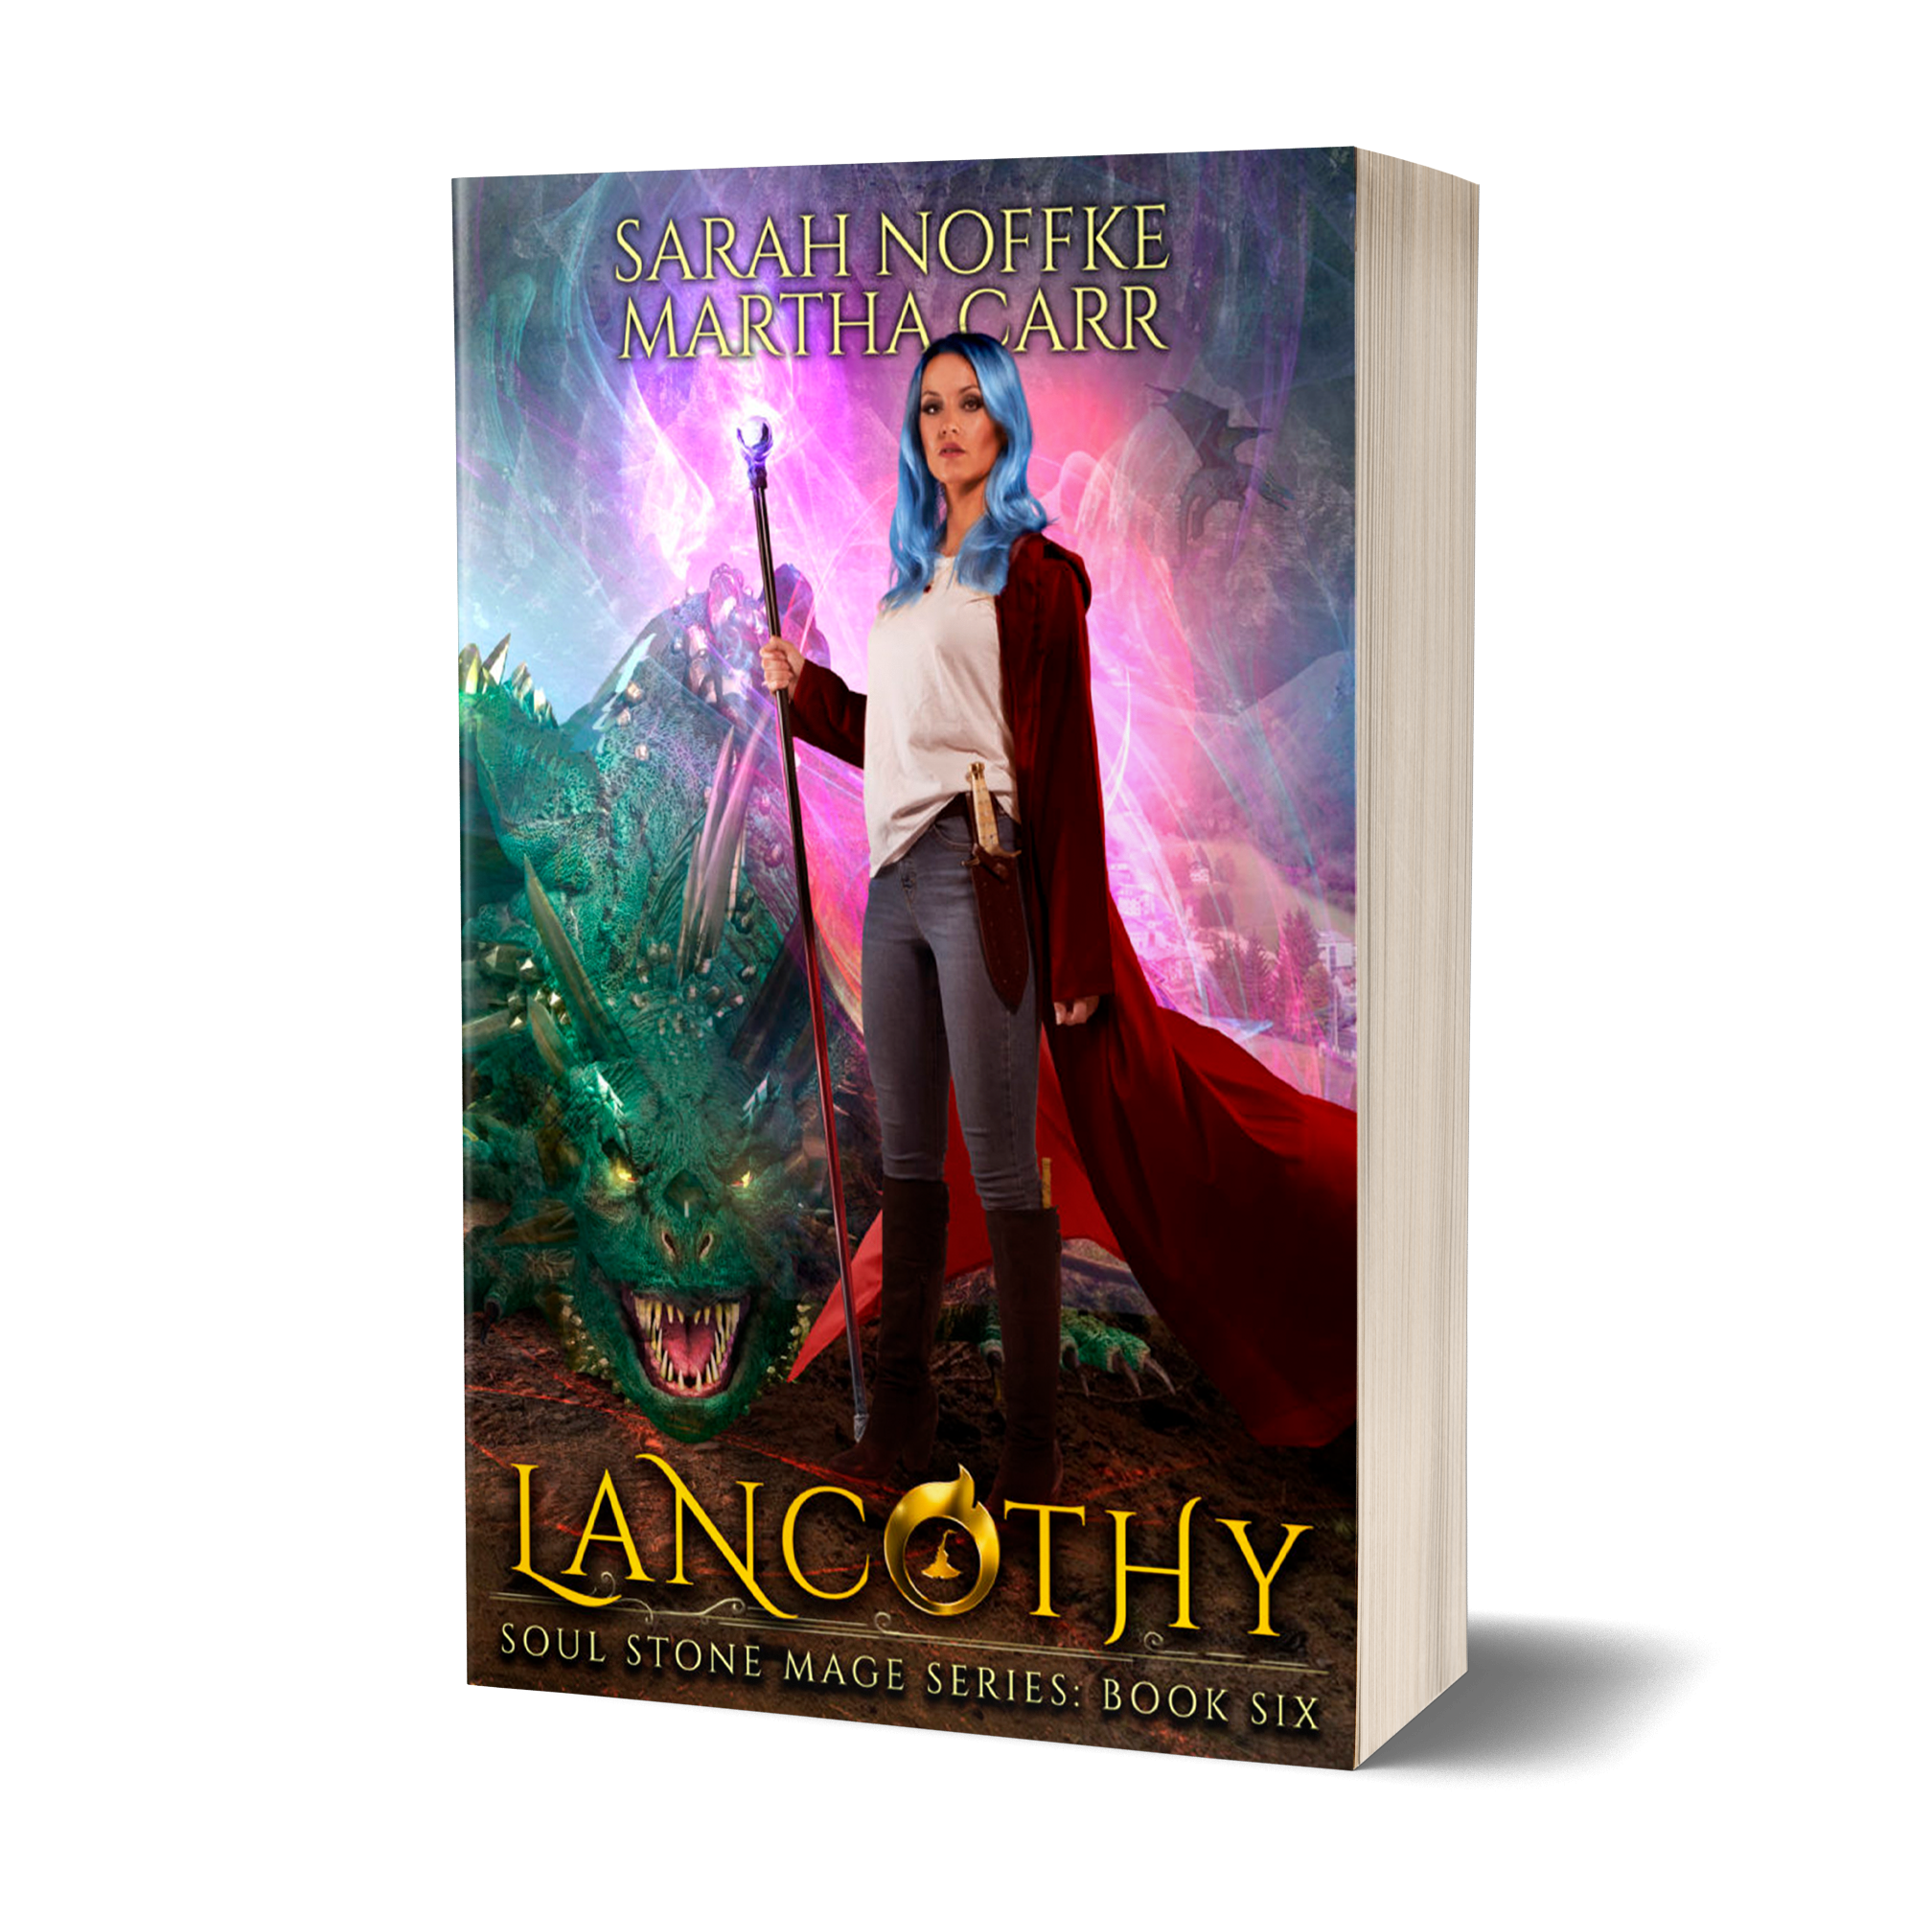 Soul Stone Mage Series Book 6 Lancothy